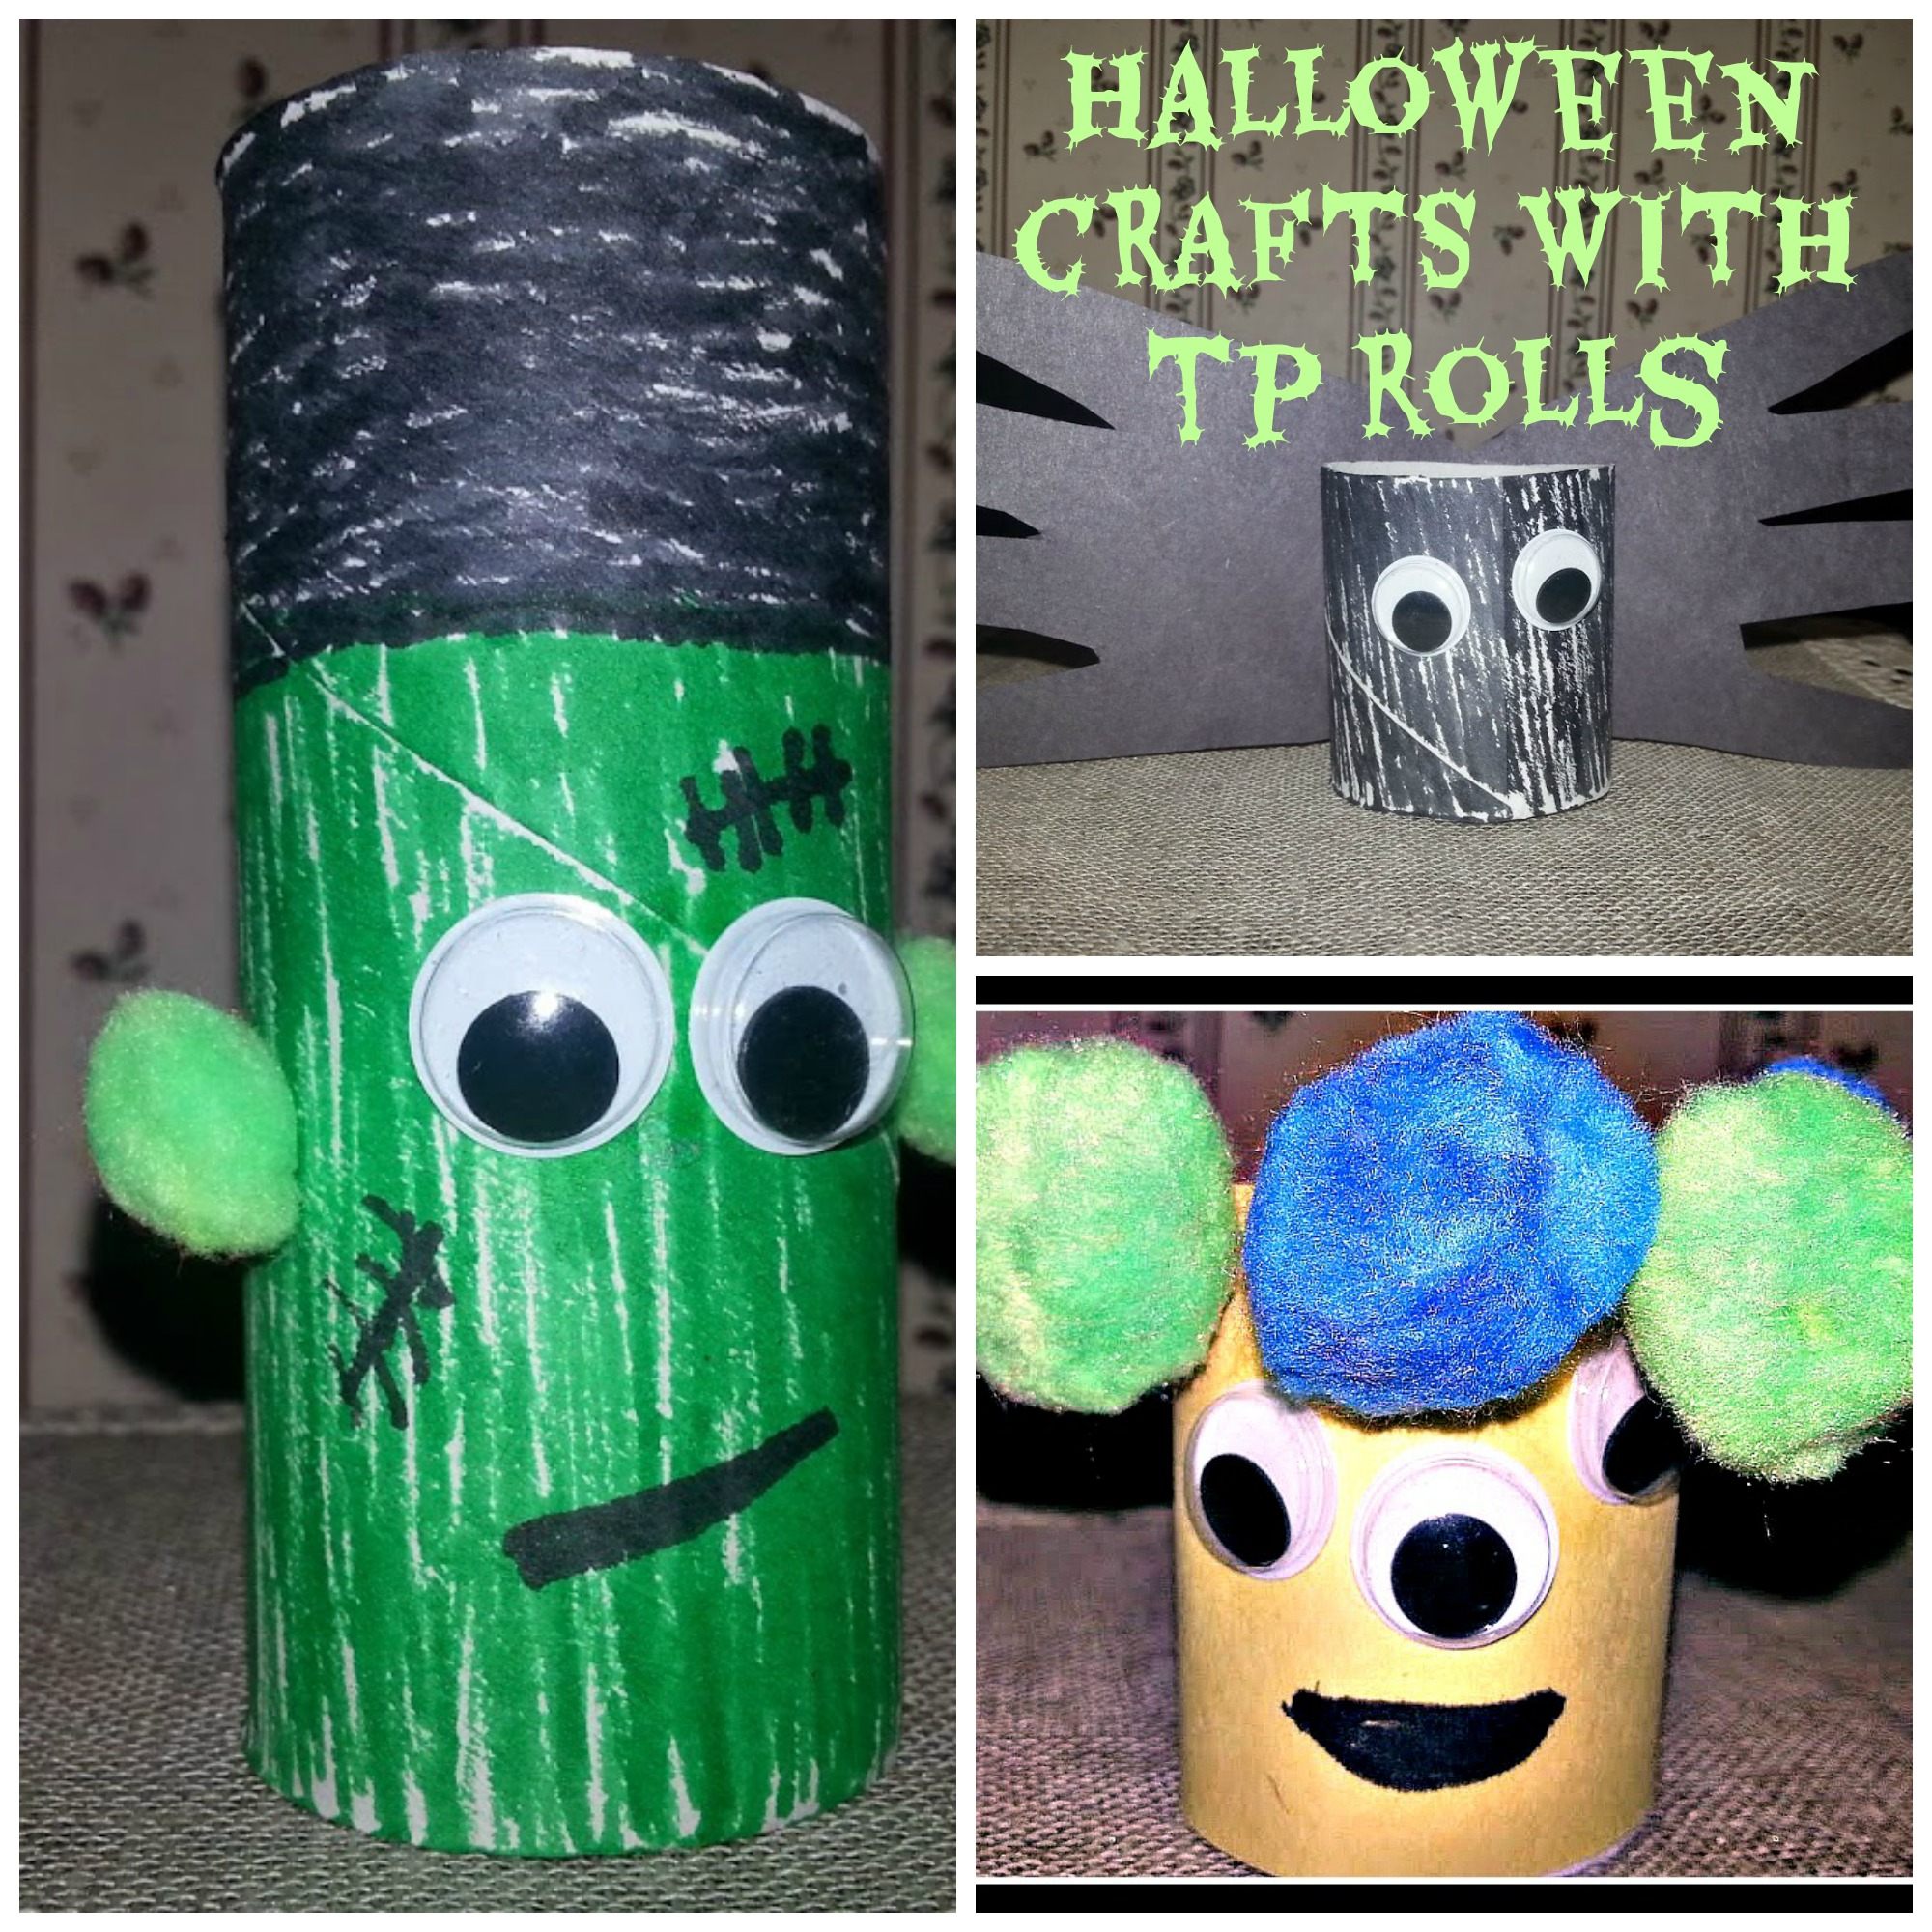 Fun Simple Halloween Crafts with TP Rolls